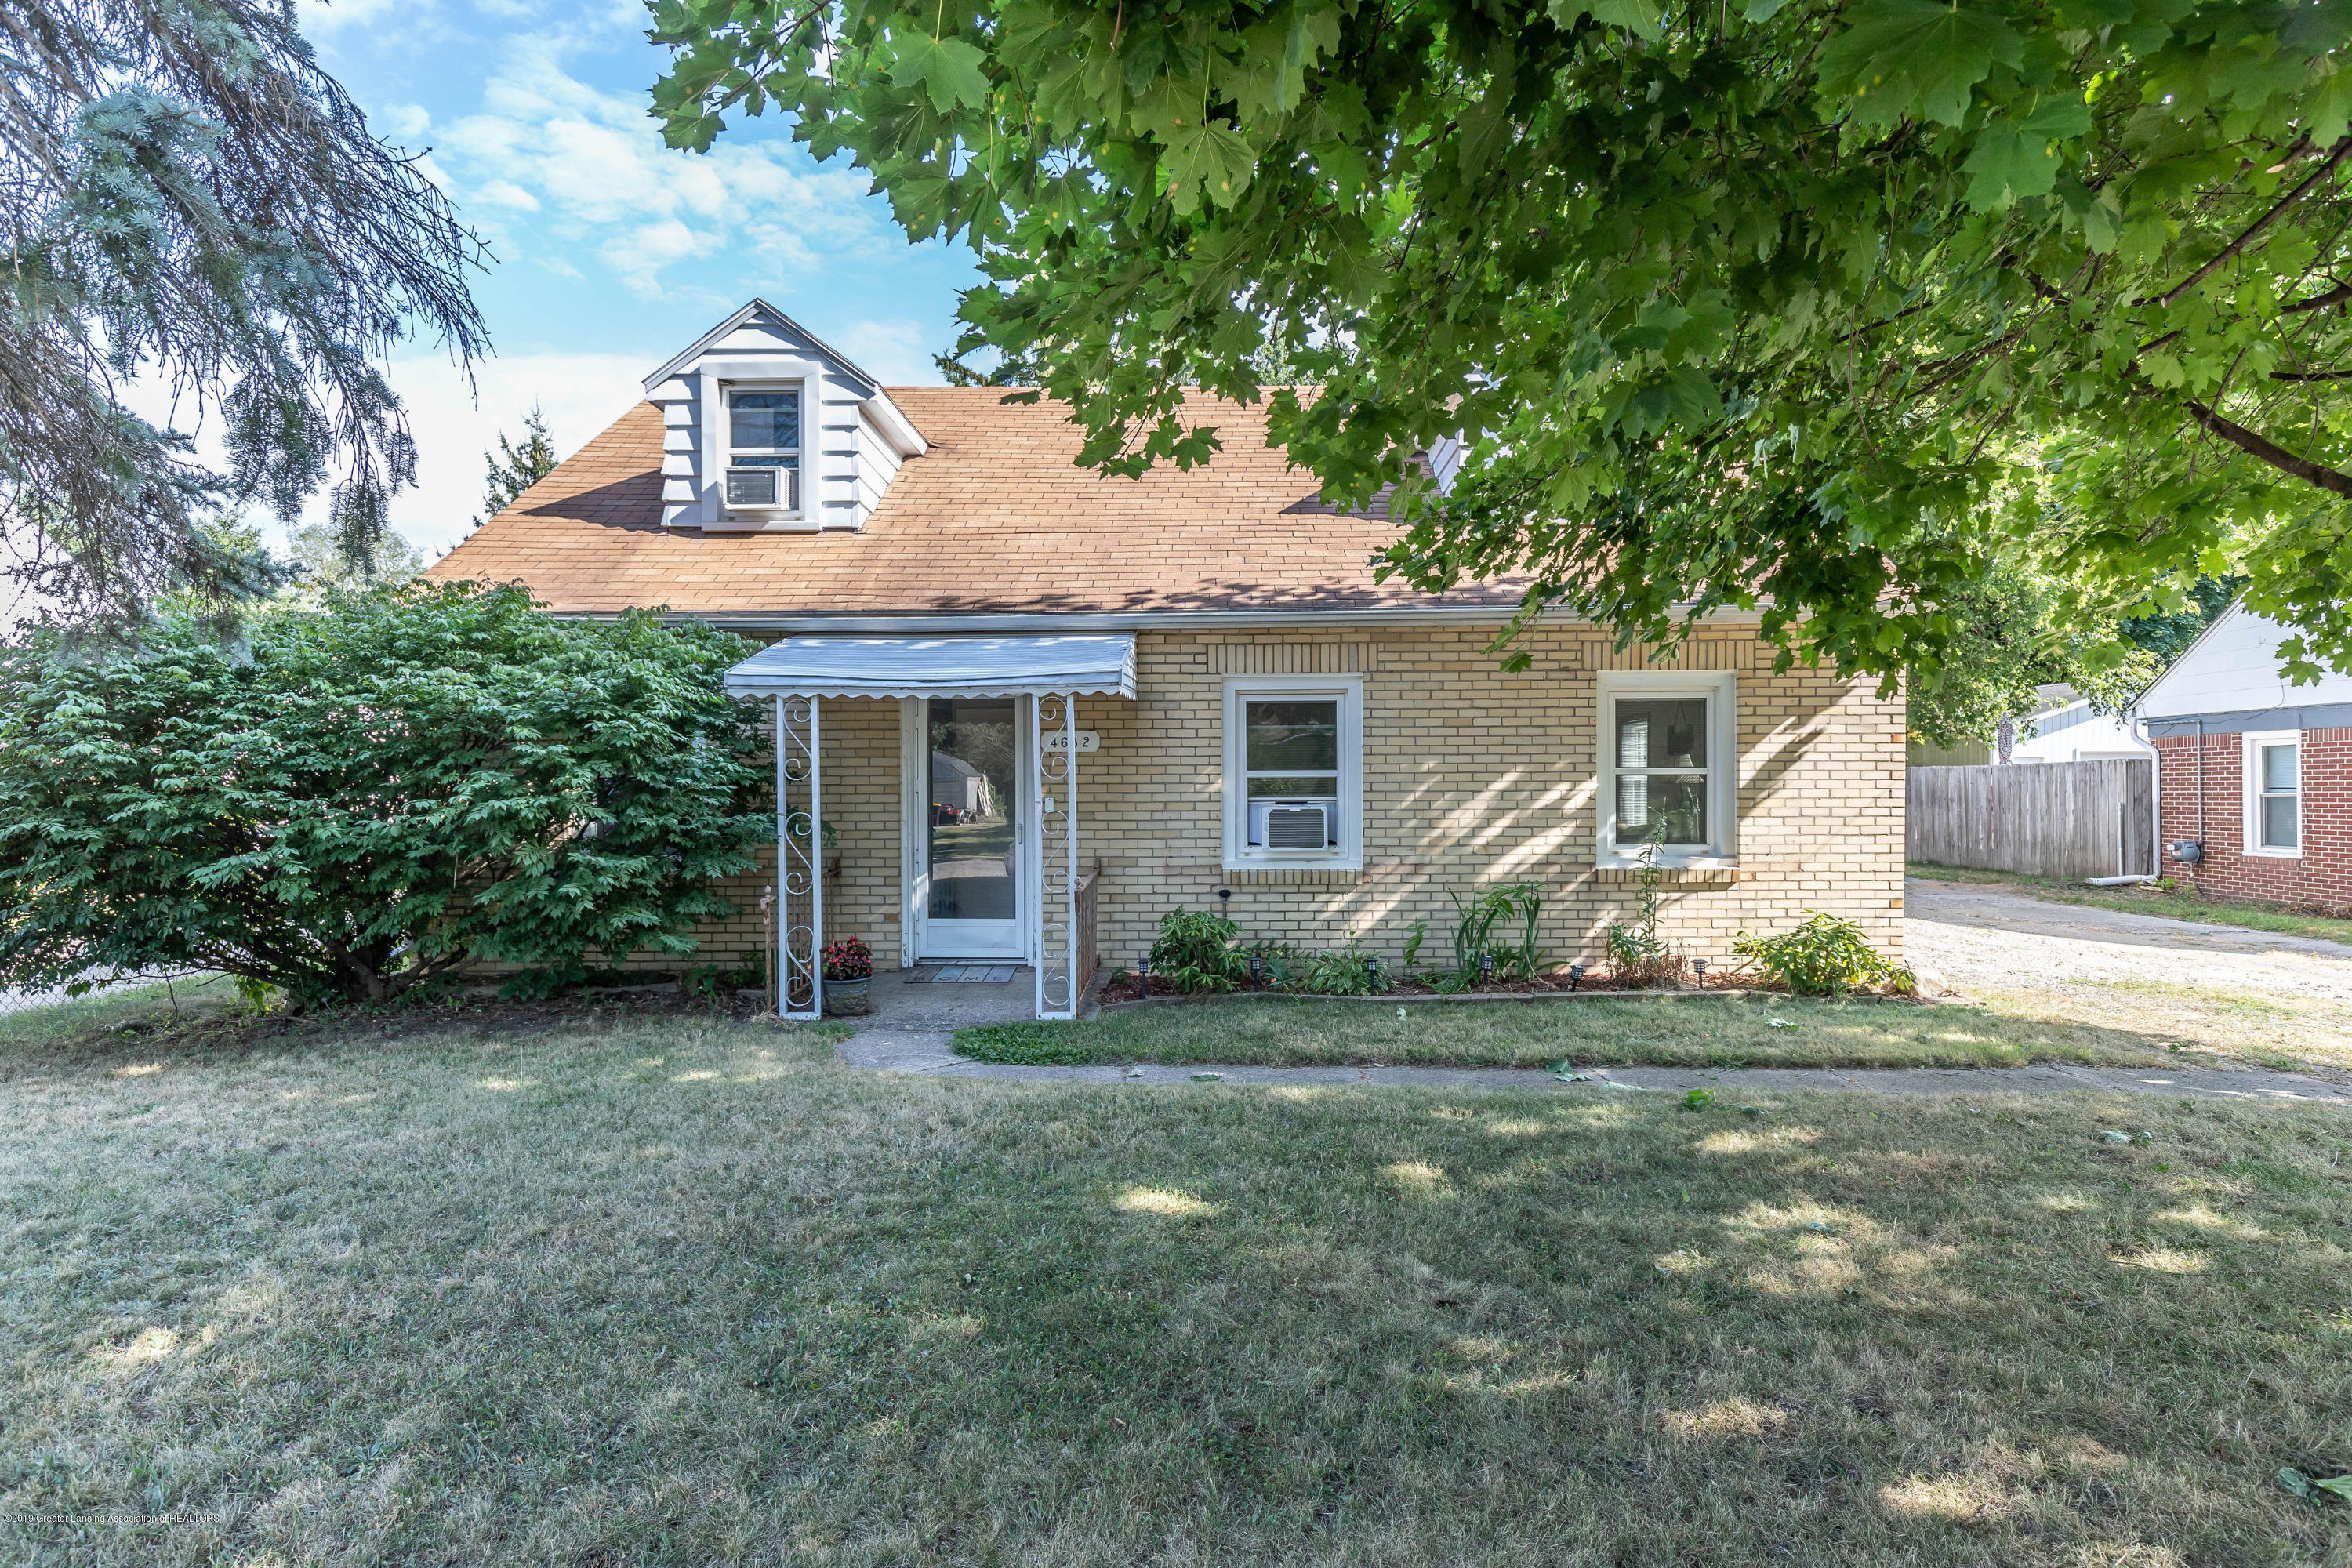 4632 Tolland Ave - tollandfront2(1of1) - 1